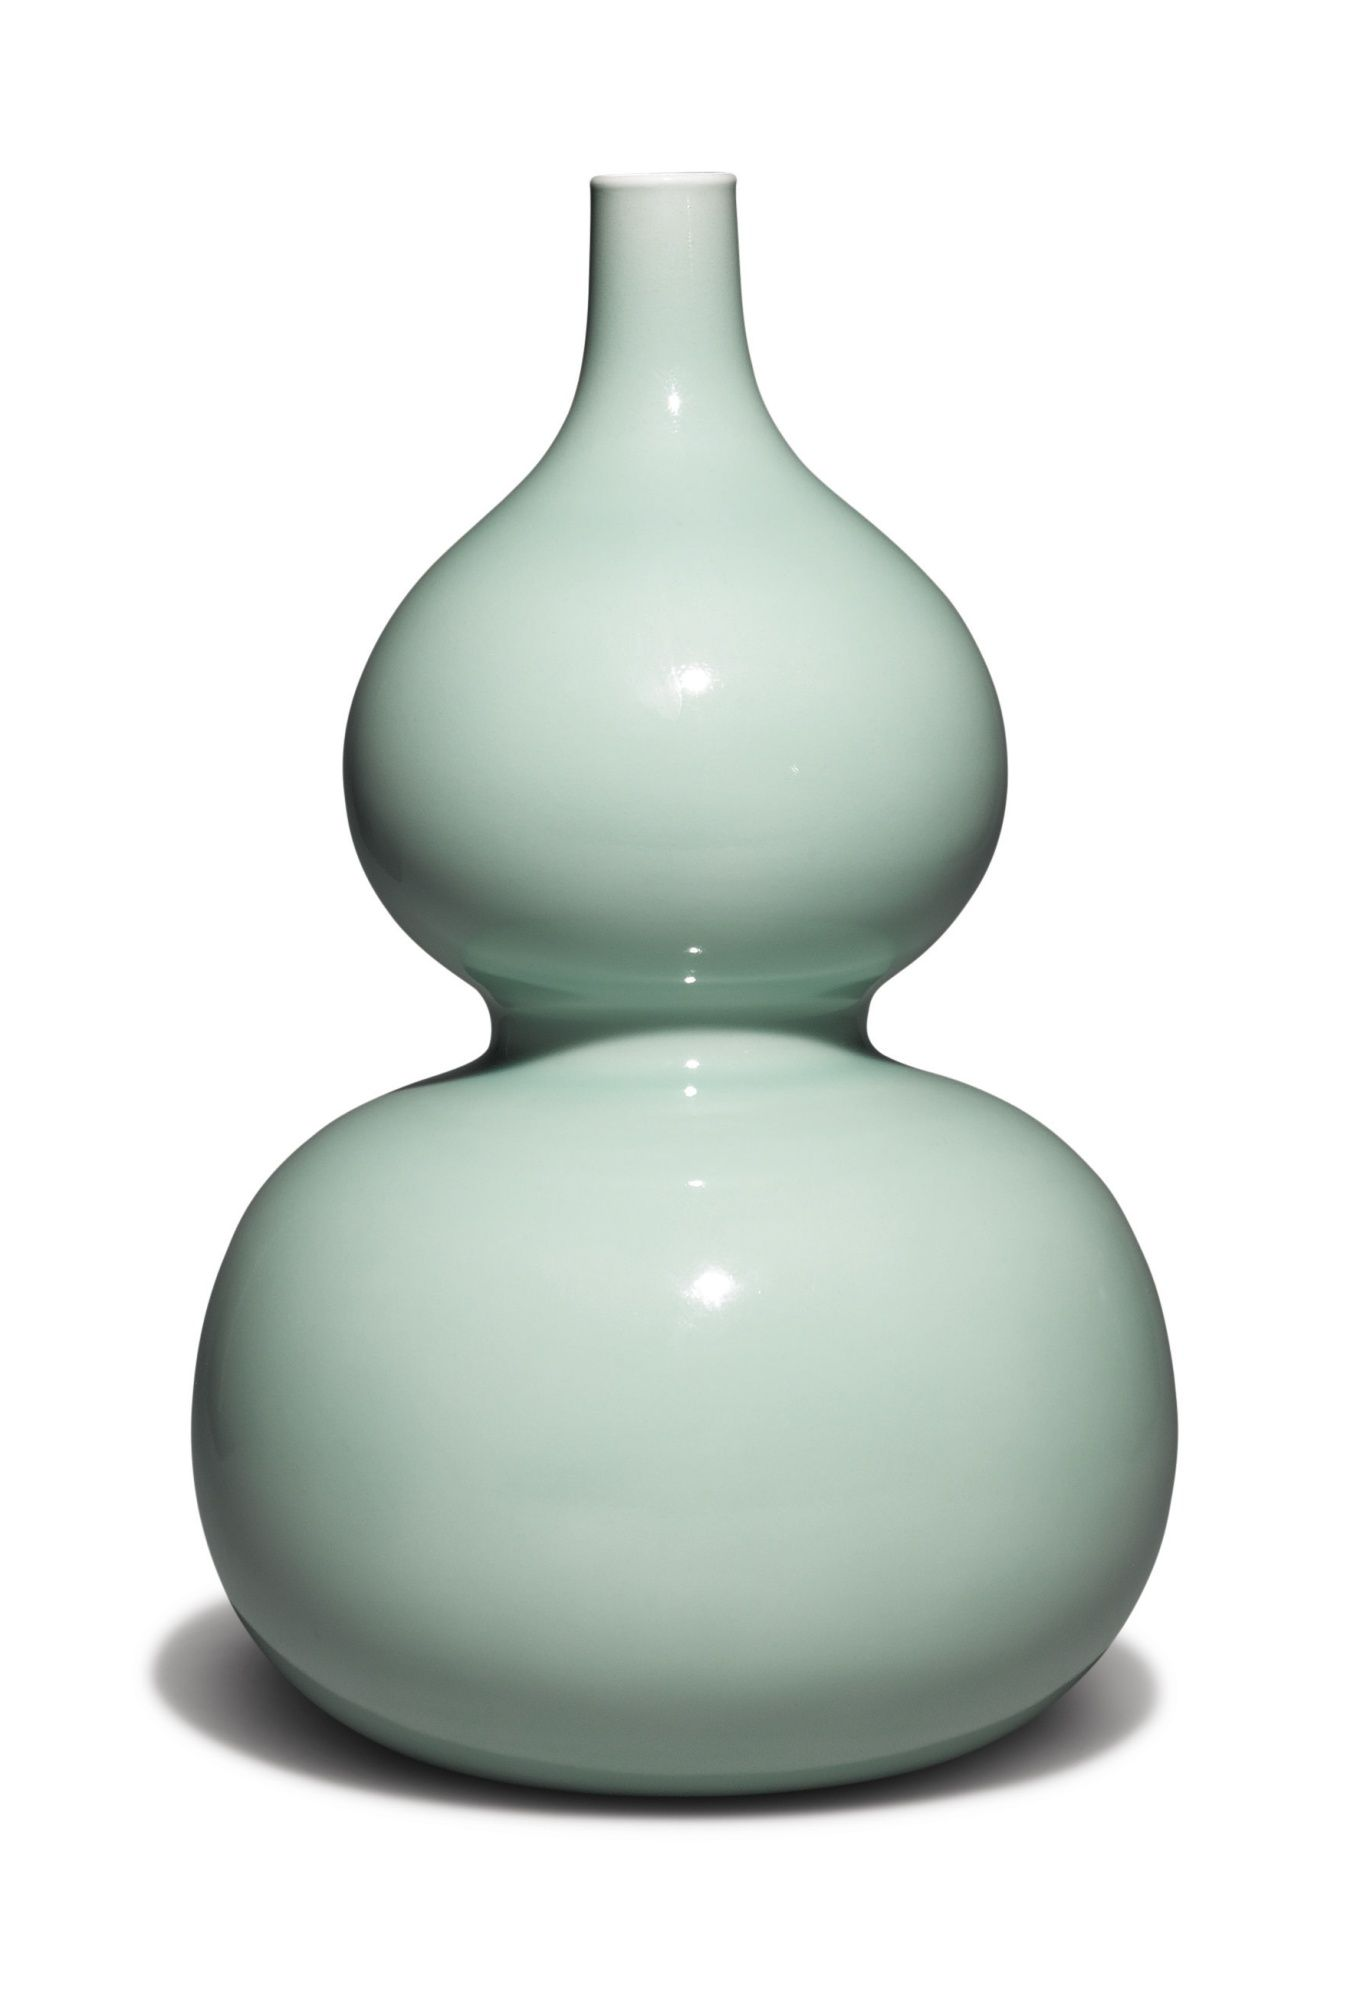 FINE AND RARE CELADON-GLAZED DOUBLE-GOURD VASE, YONGZHENG SEAL MARK AND PERIOD, elegantly potted with two globular bodies and a narrow mouth, covered overall in a lustrous glaze, the recessed base inscribed in underglaze blue with a six-character archaistic seal mark, H 12 5/8 in.